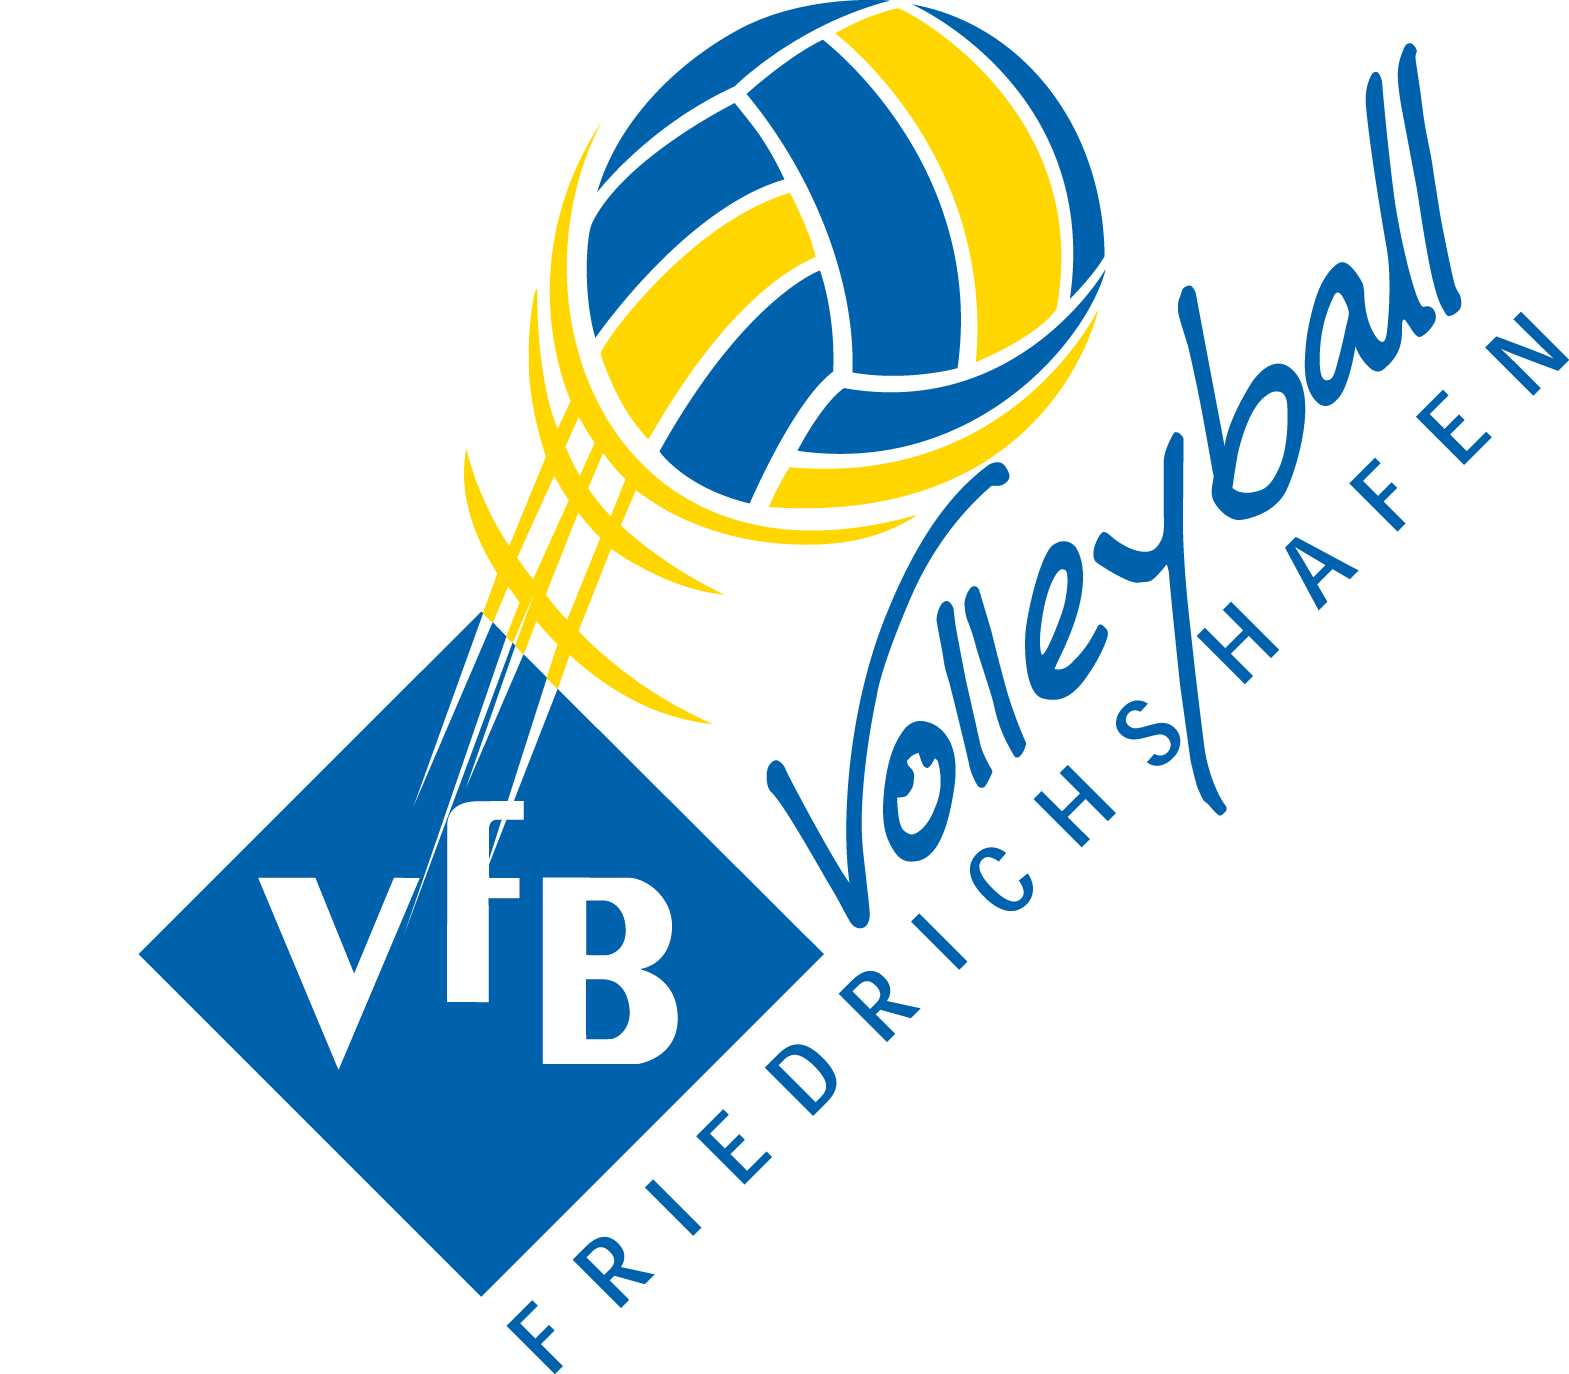 VFB Volleyball